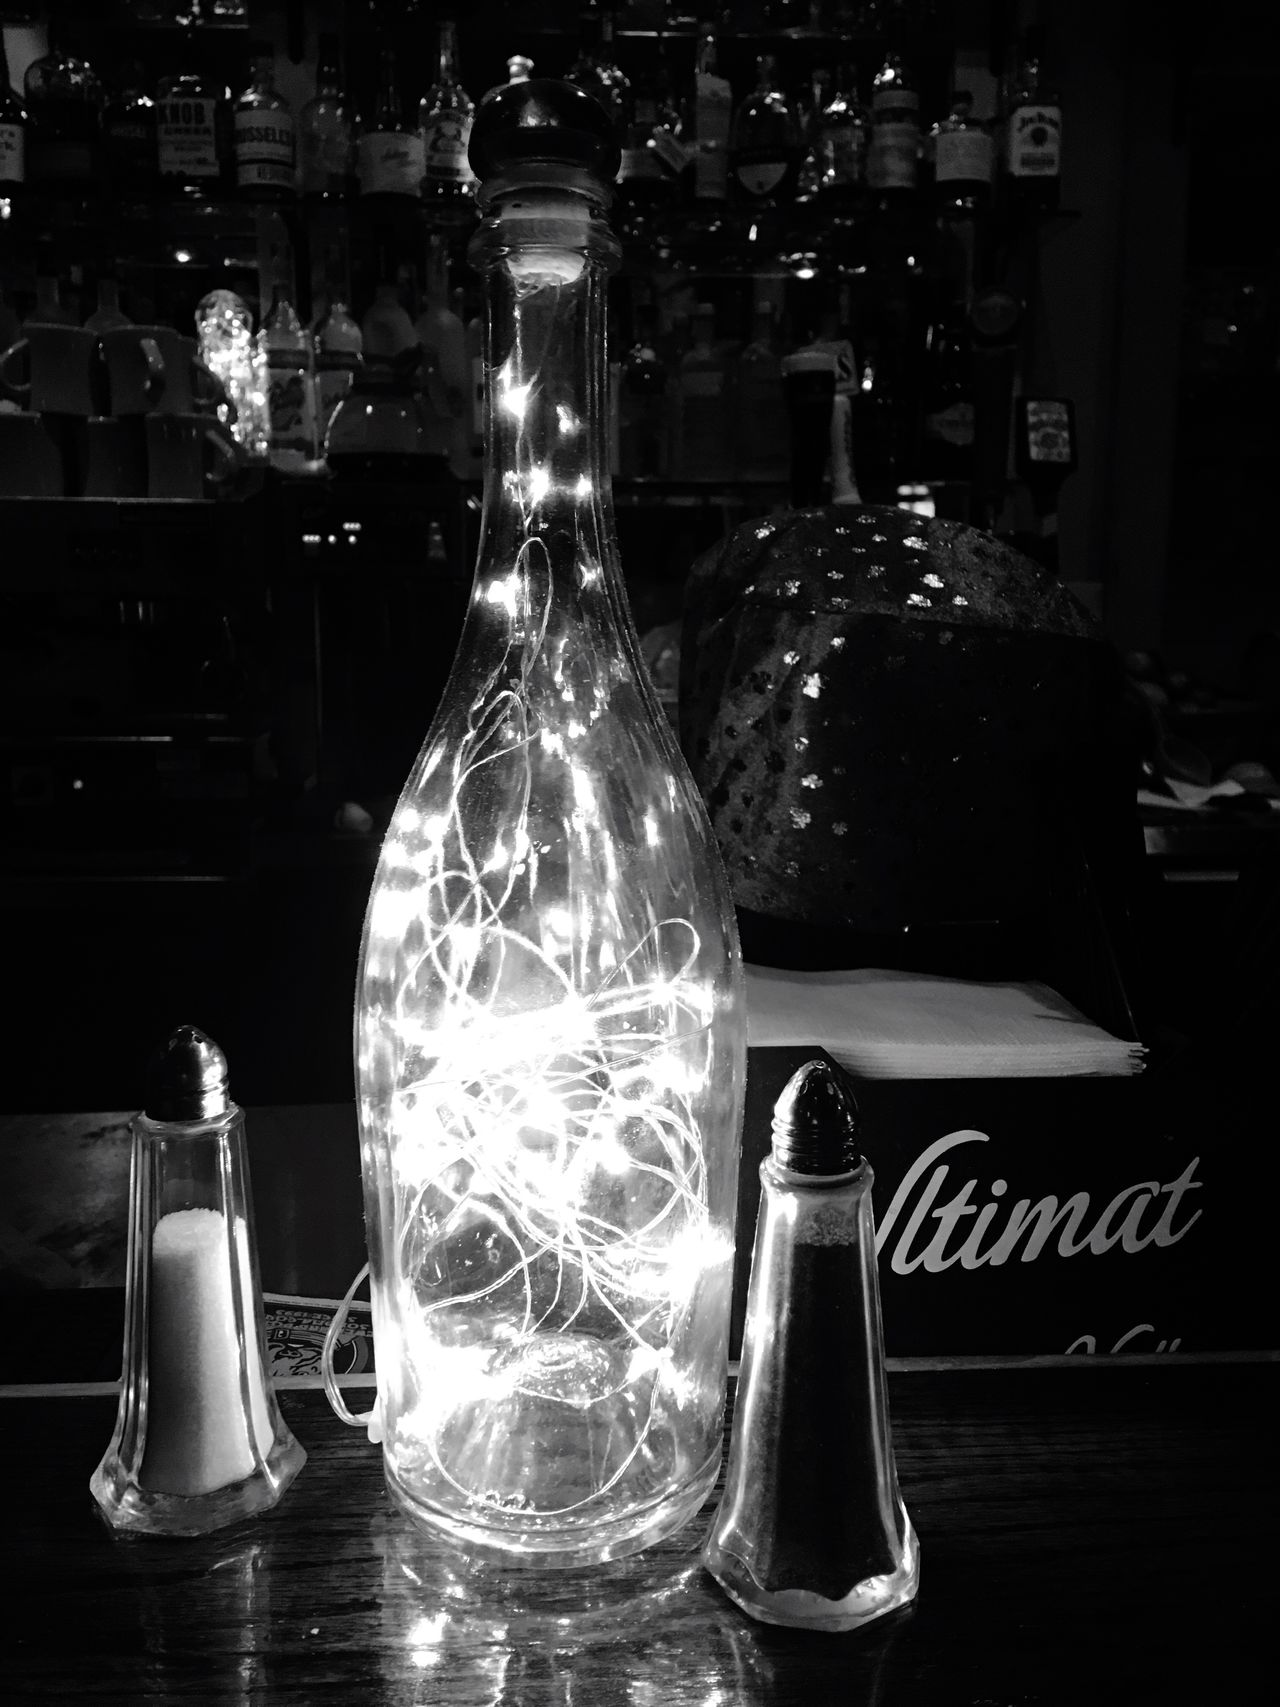 Bottle Indoors  Lights And Shadows Darkness And Light Bar Alcohol Salt And Pepper Shakers Salt And Pepper No People Close-up Day String Of Lights String Of Lights In A Bottle